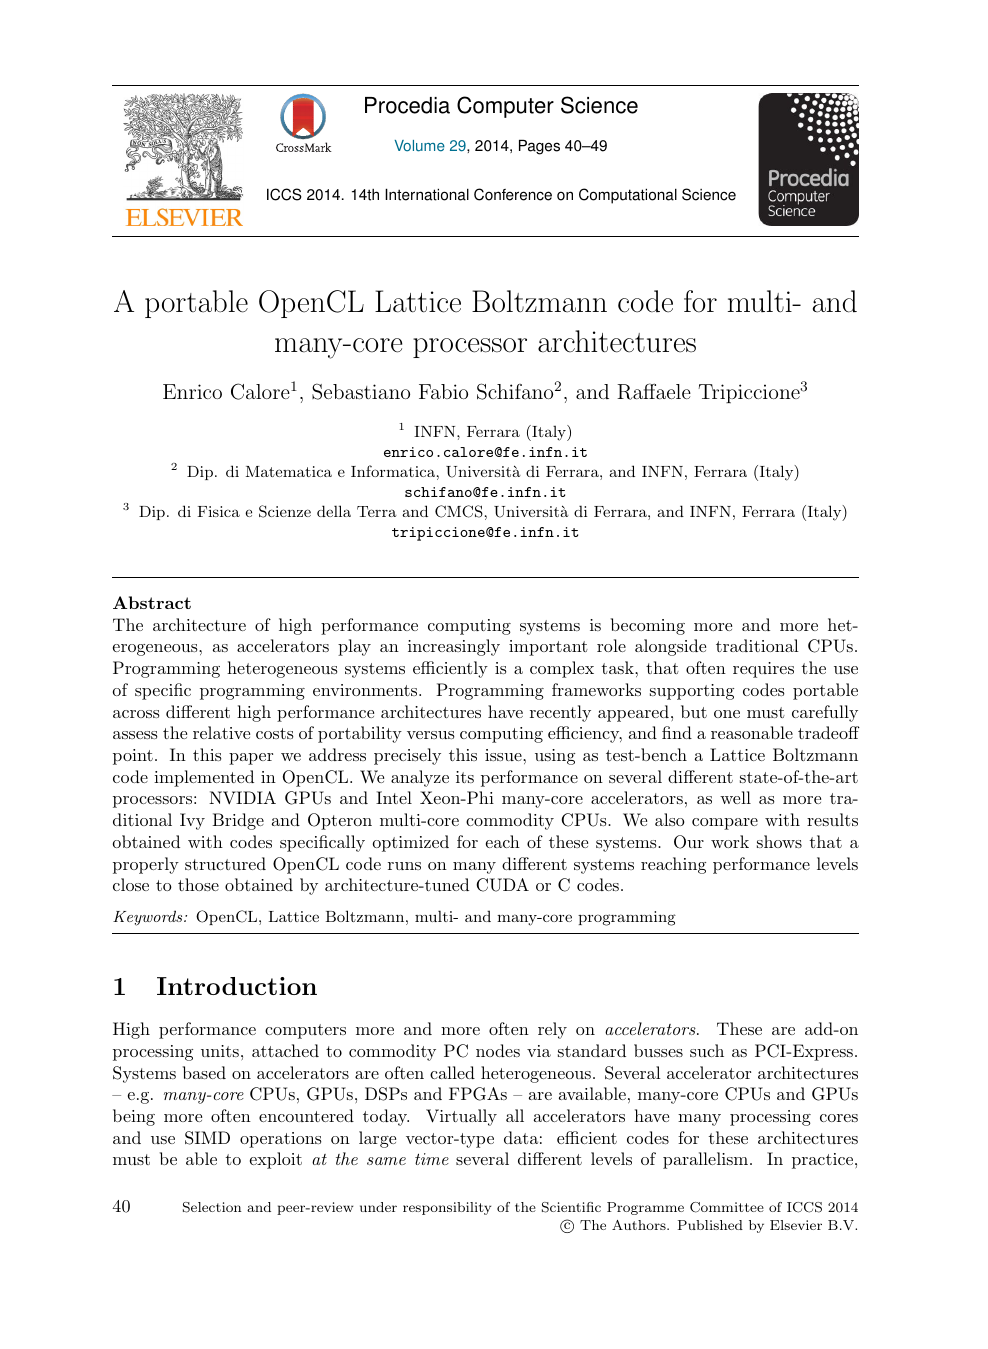 A Portable OpenCL Lattice Boltzmann Code for Multi- and Many